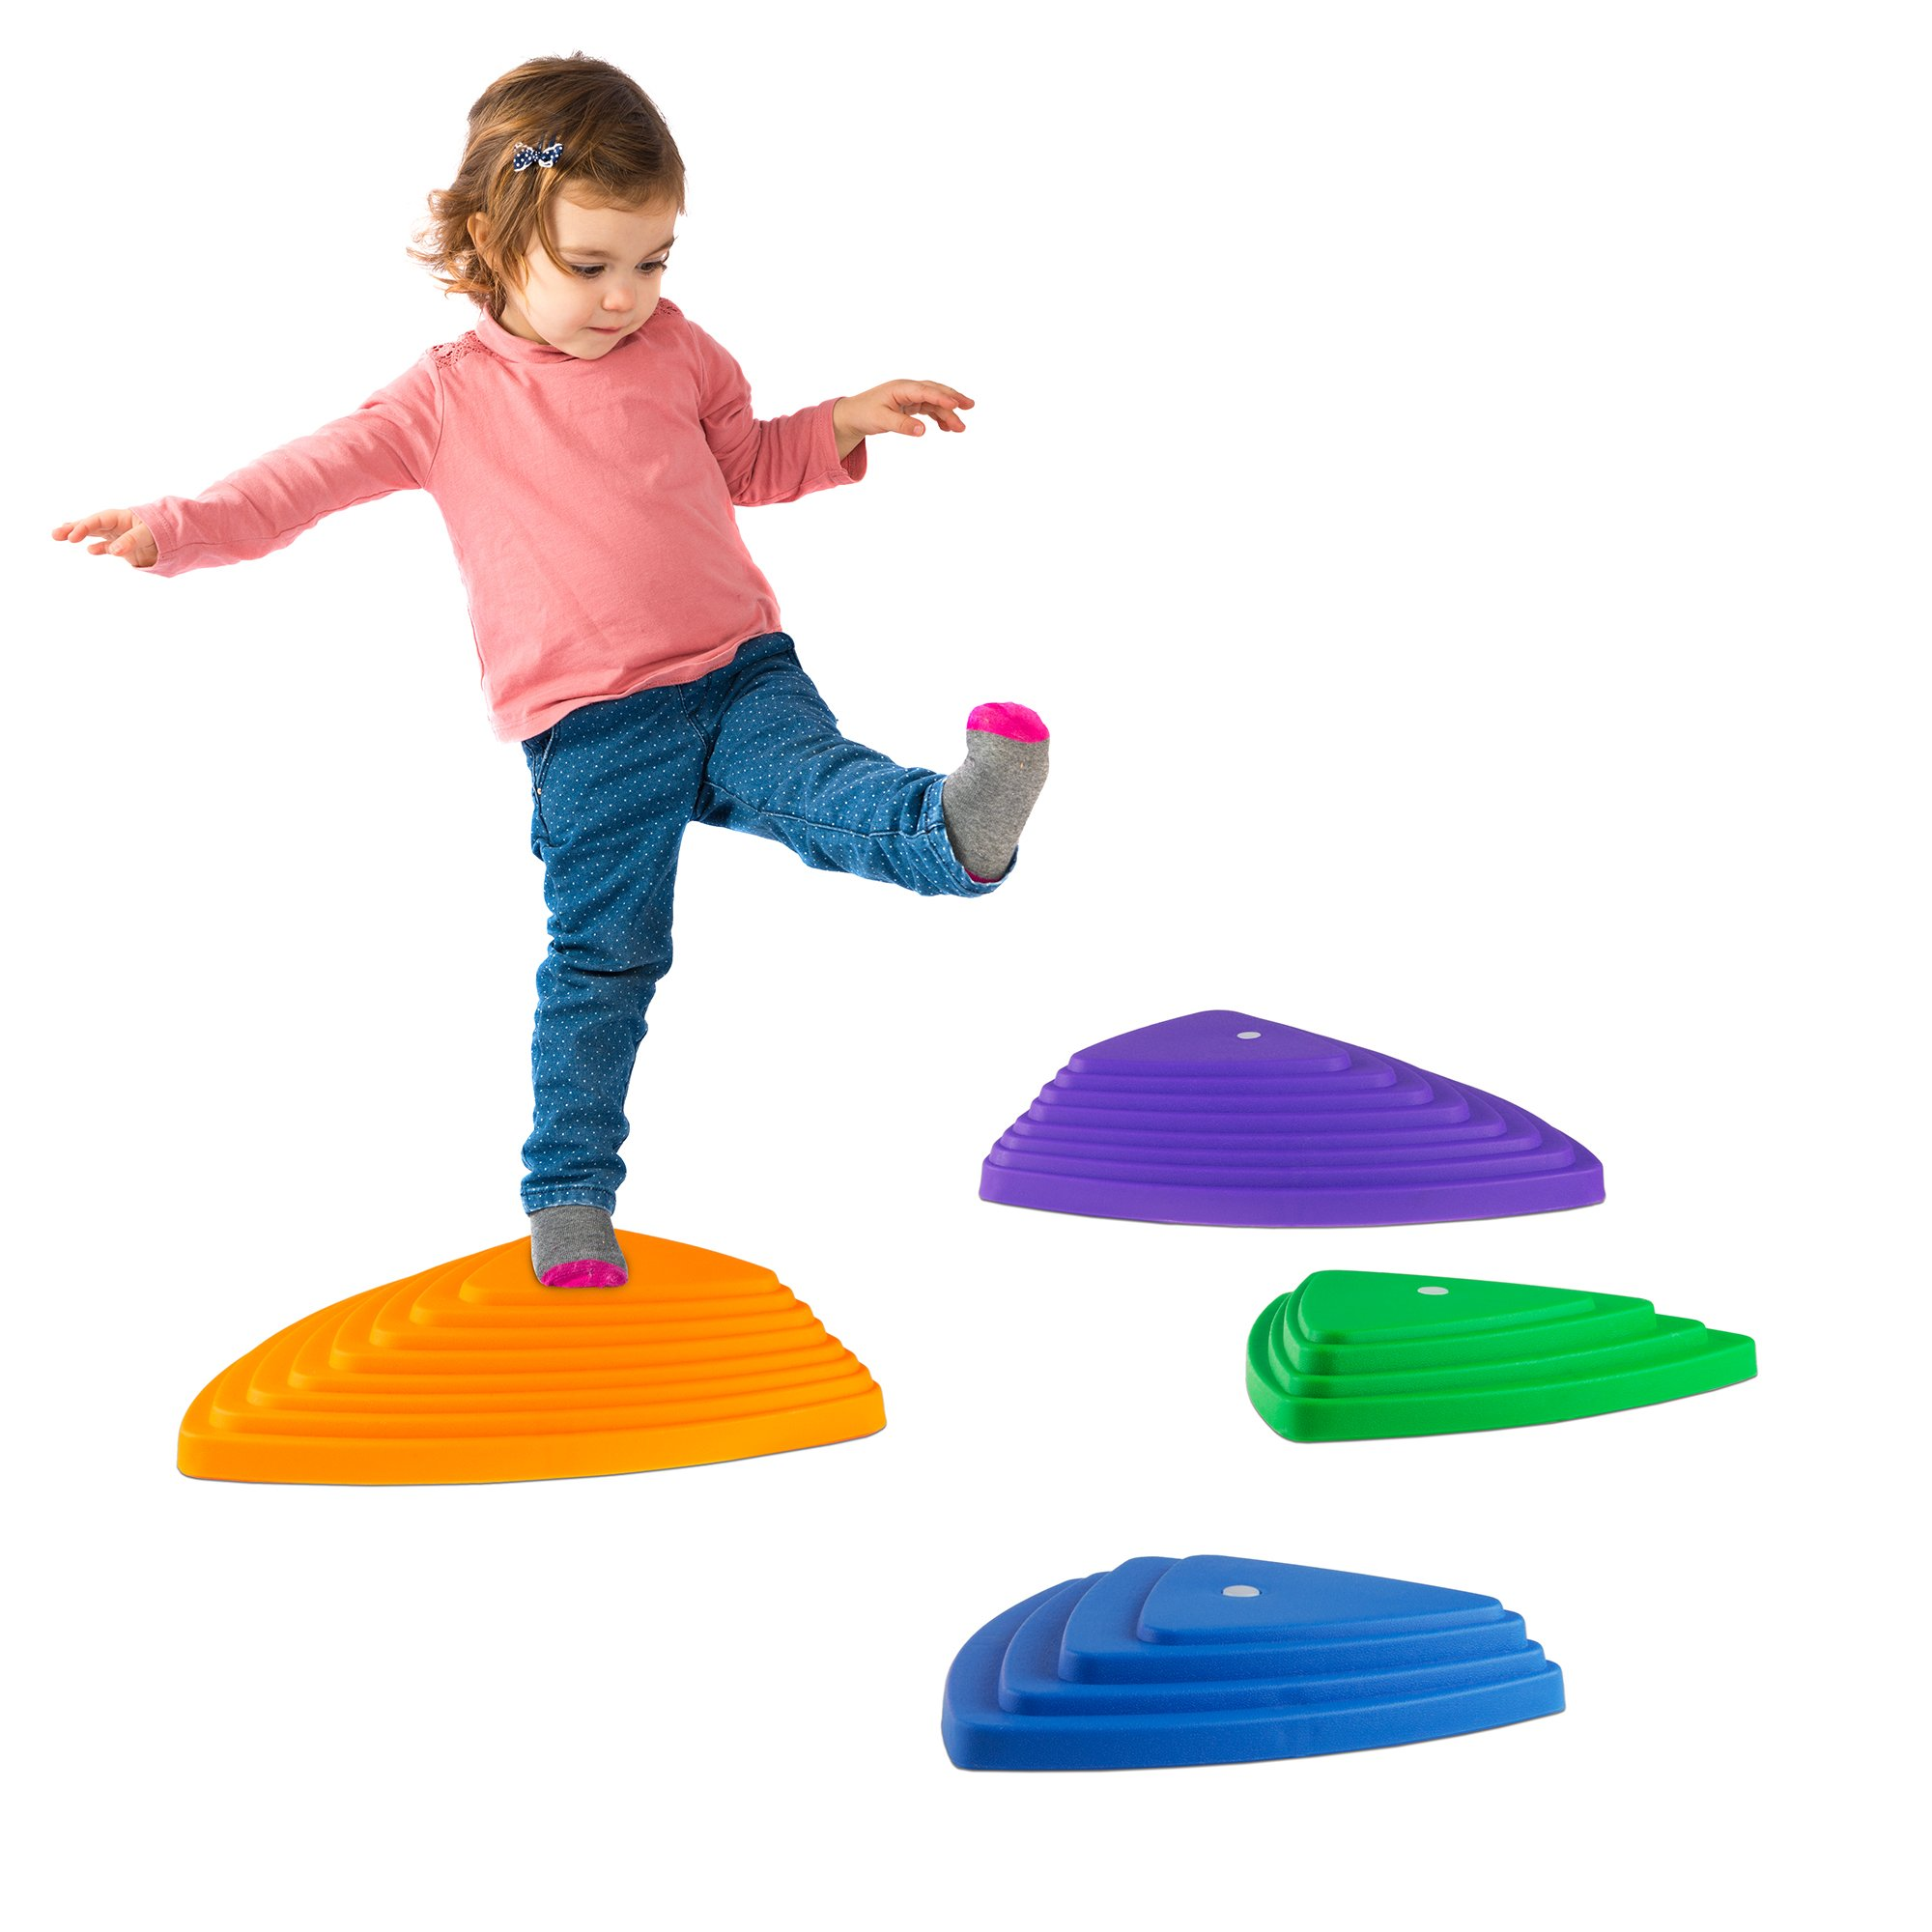 Hey! Play! Triangular Stepping Stones- Fun Triangles for Balance, Coordination and Exercise for Kids- Set of 6 (3 Small Stones and 3 Large Stones) By